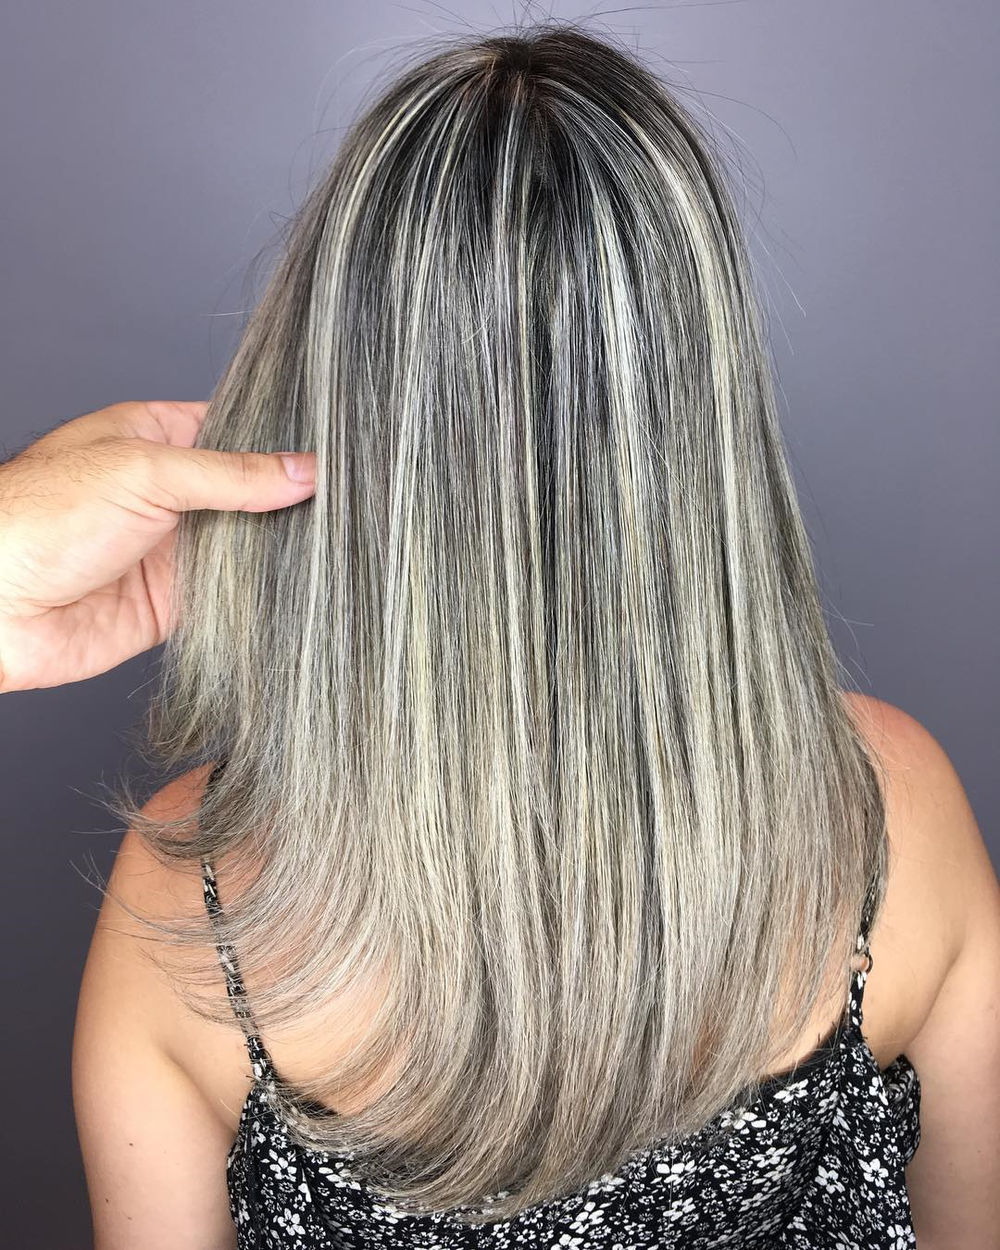 Straight Ash Blonde Hair with Silver Highlights